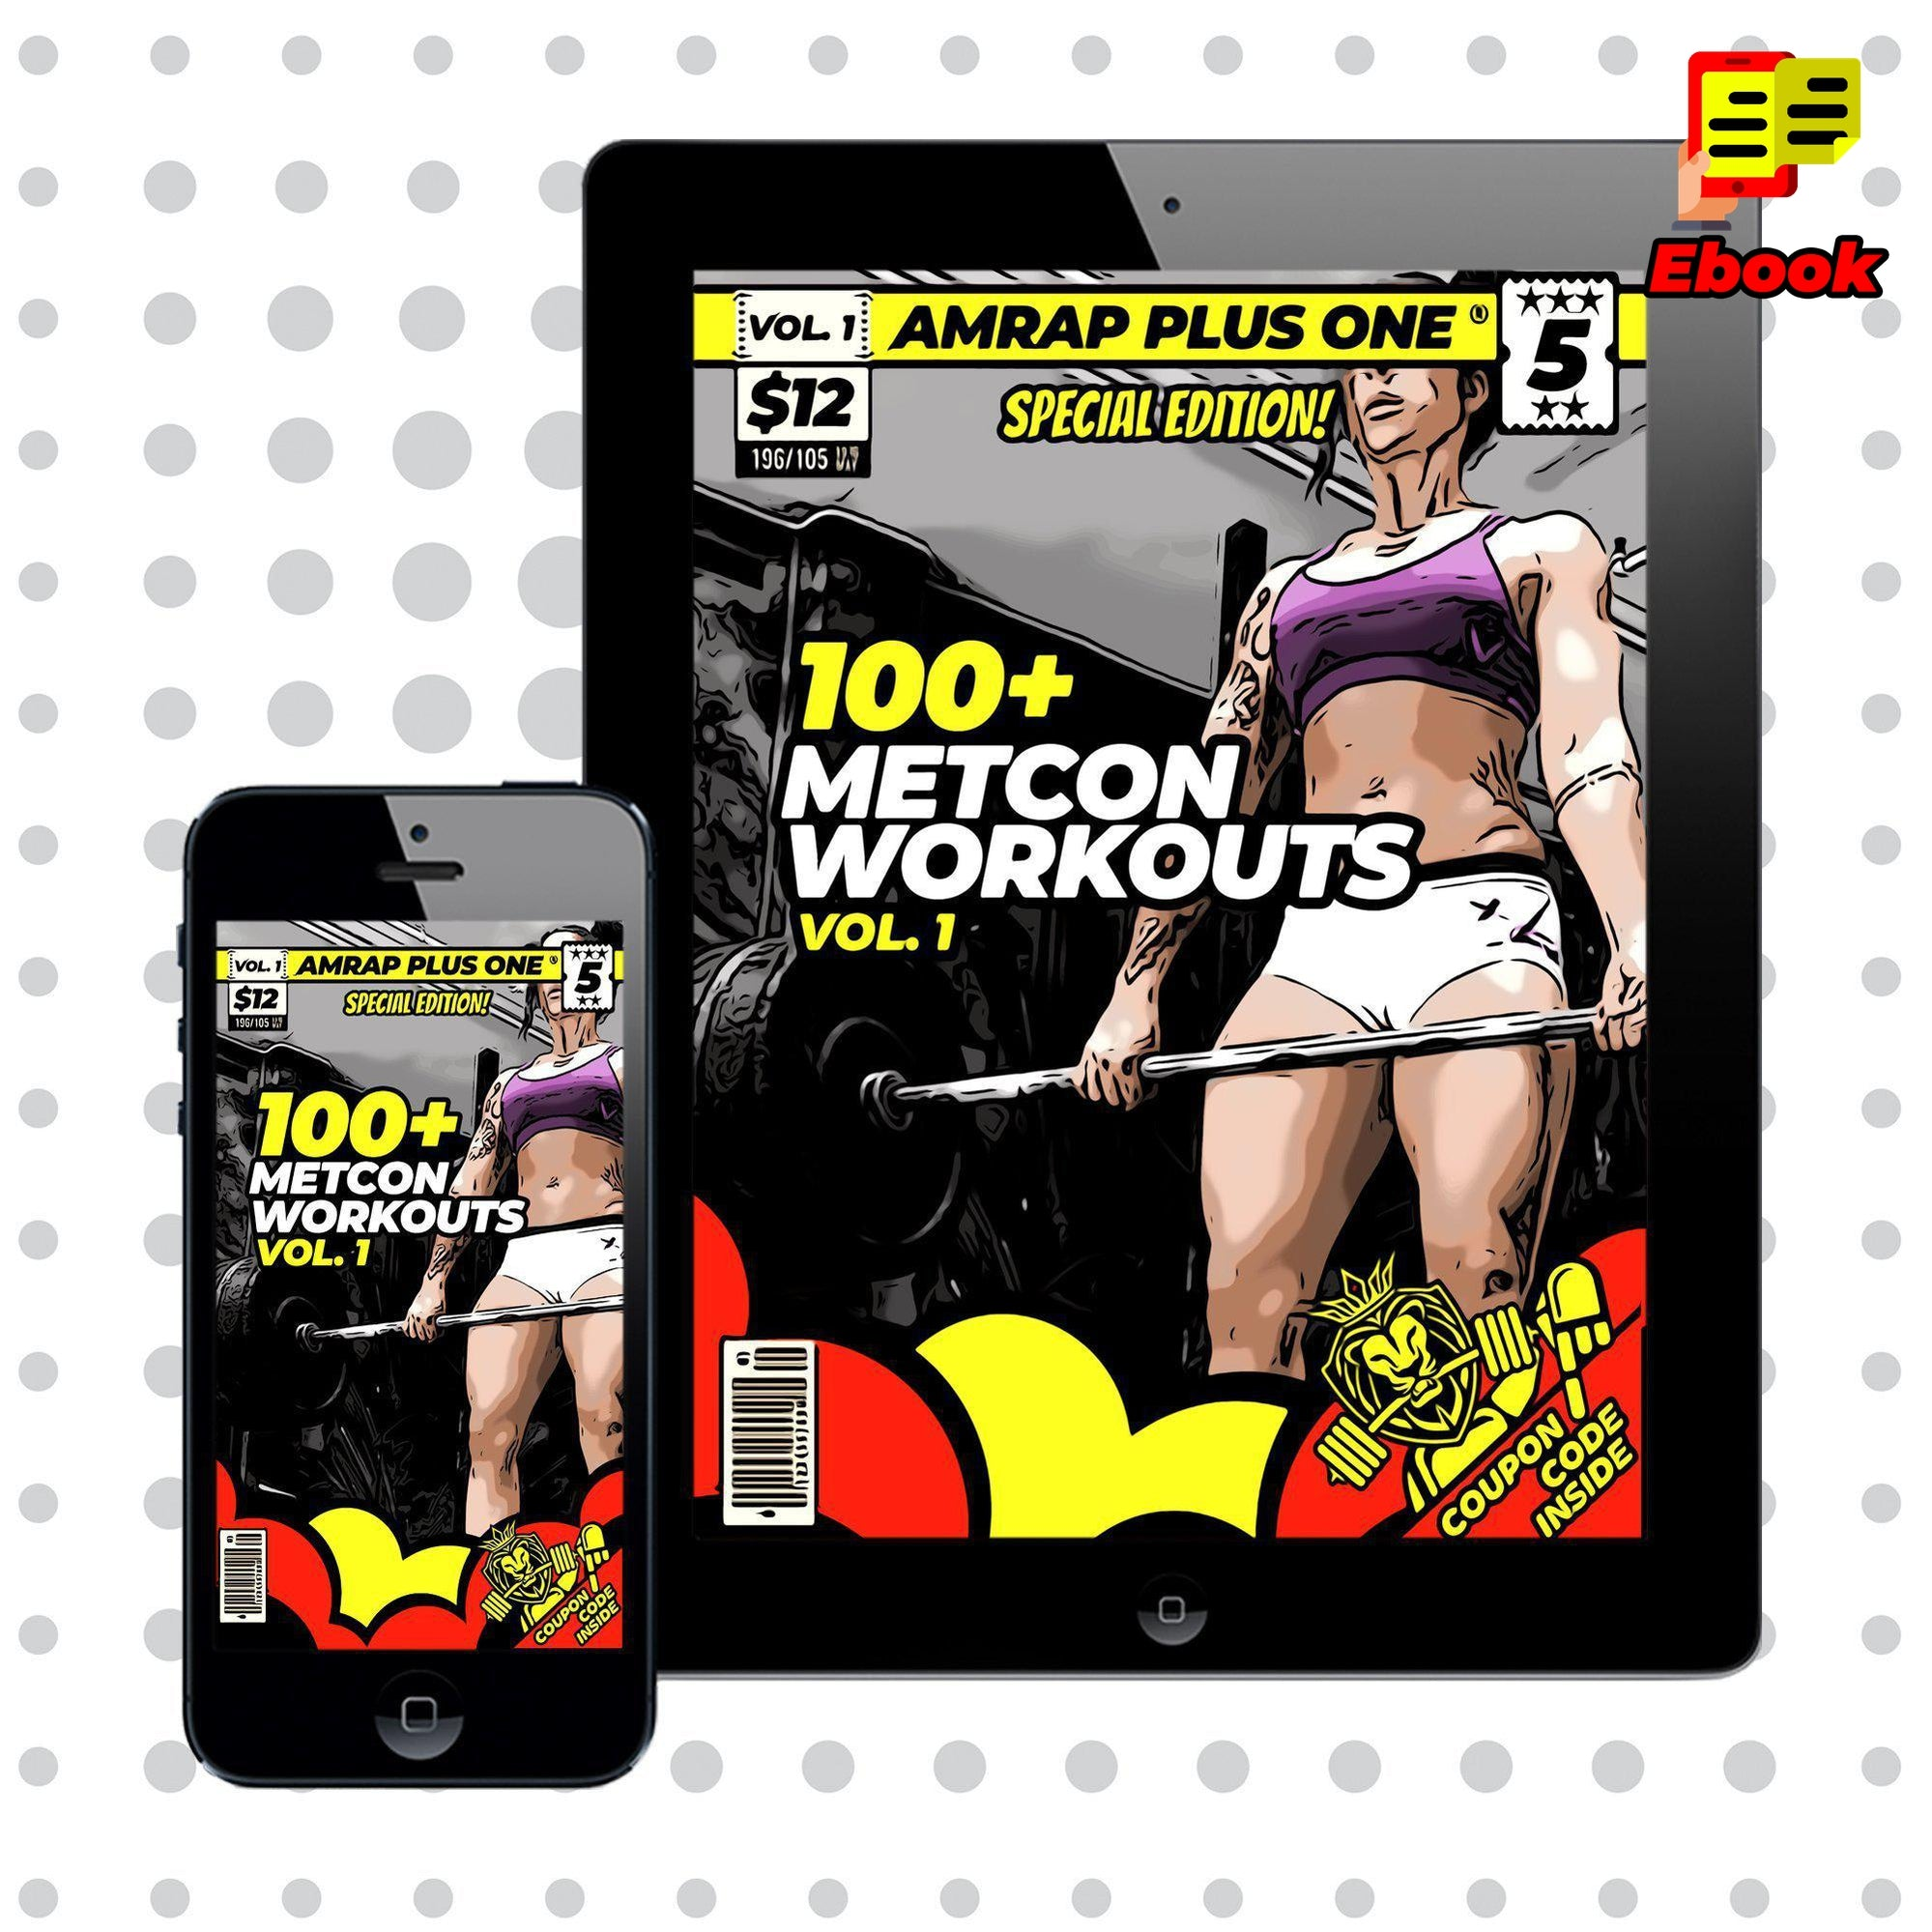 100+ METCON Workouts Vol. 1 - AMRAP Plus One